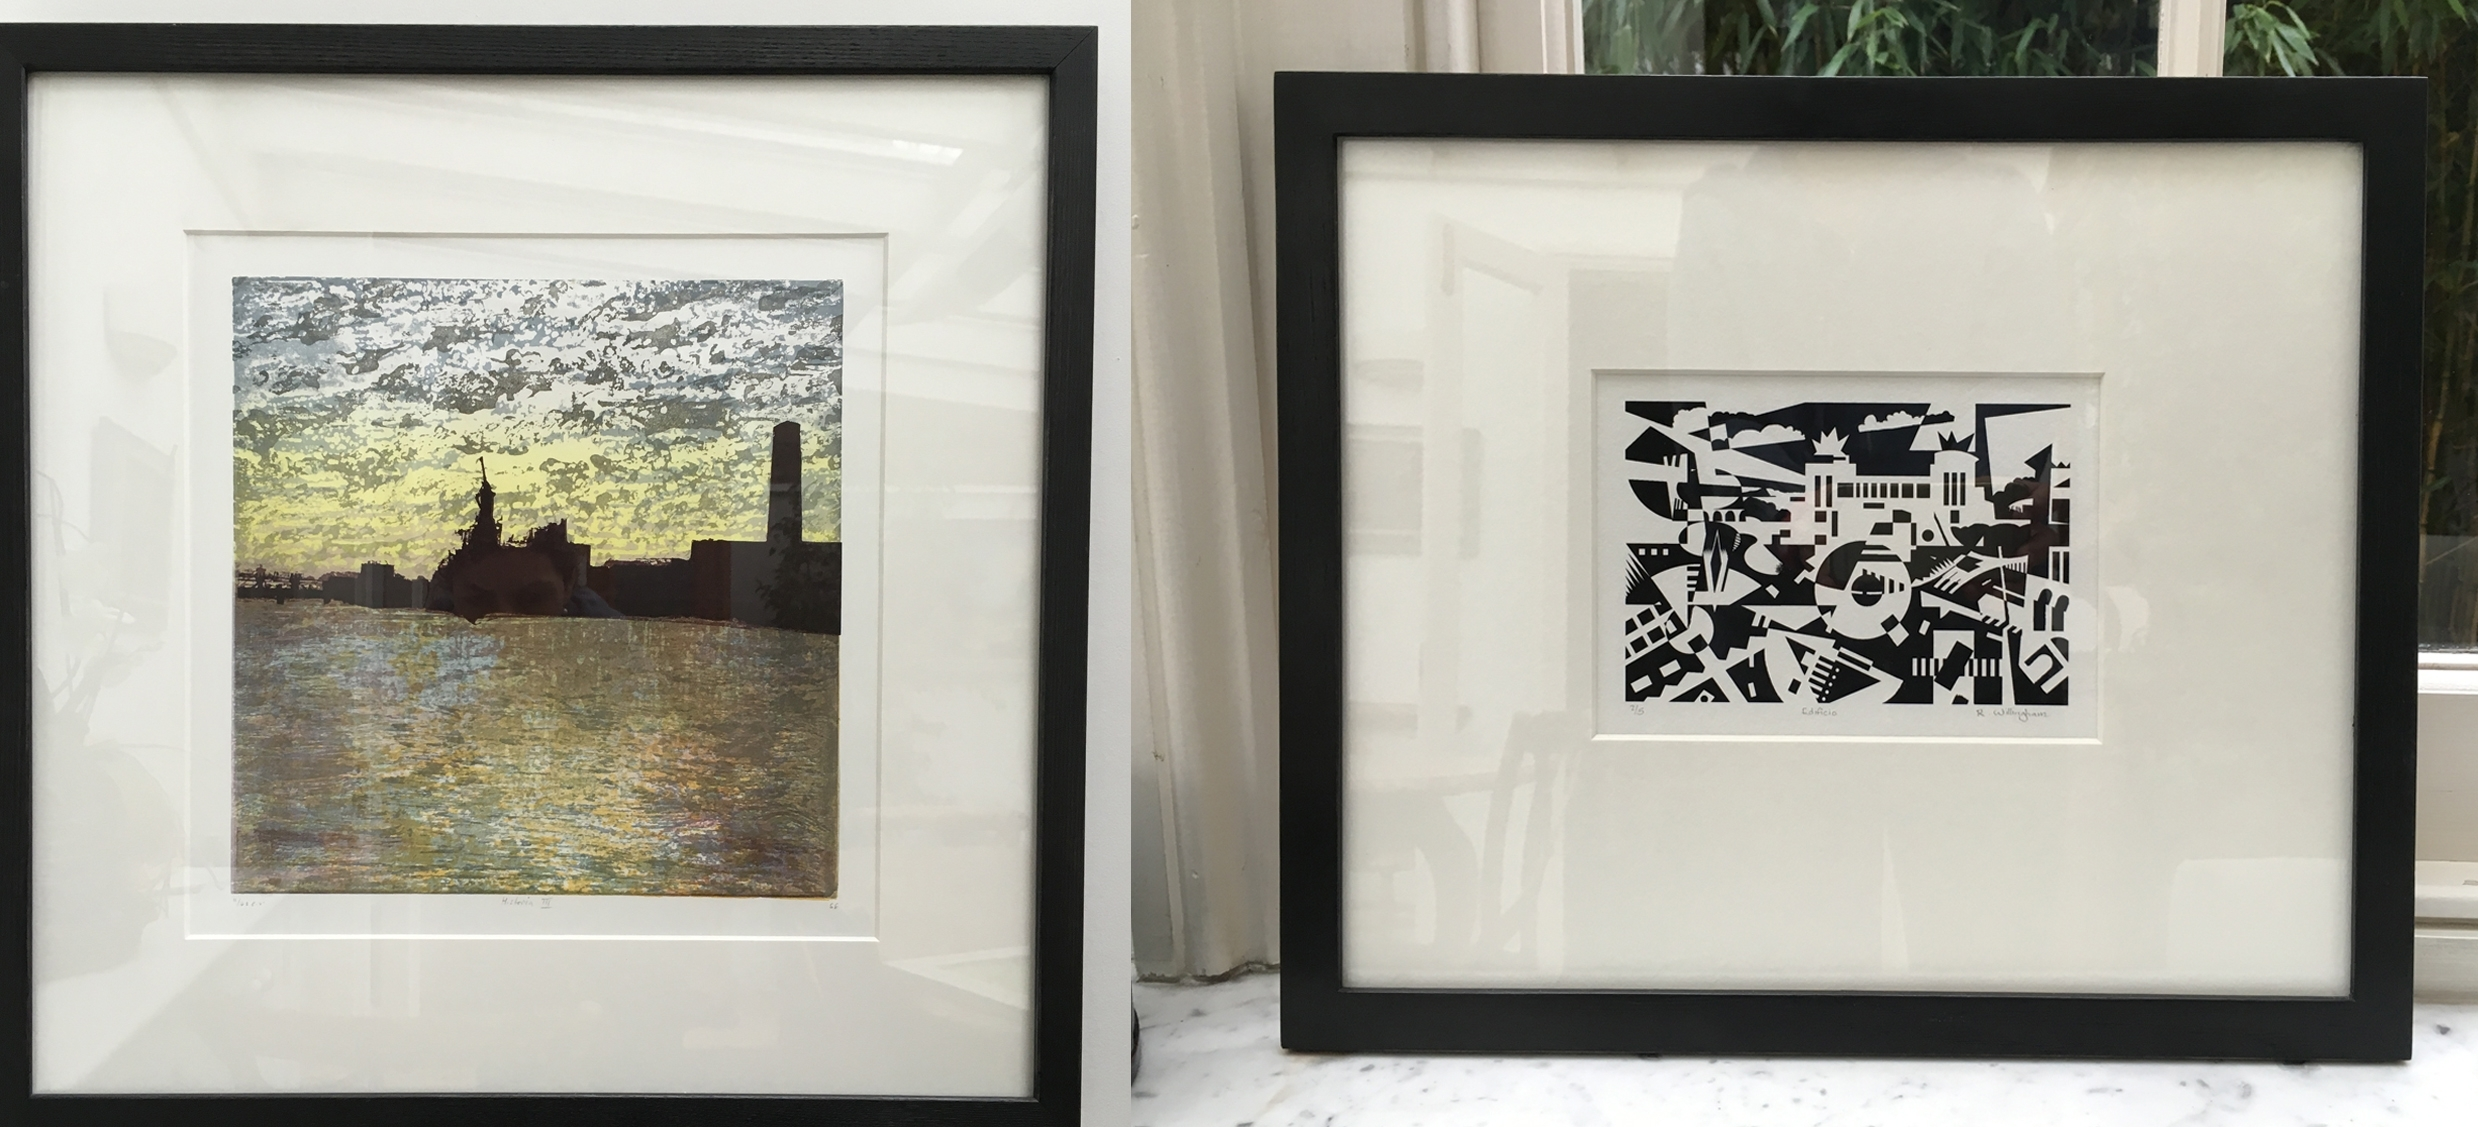 How To Frame Prints – Print Solo Intended For Current Black And White Framed Art Prints (Gallery 15 of 15)